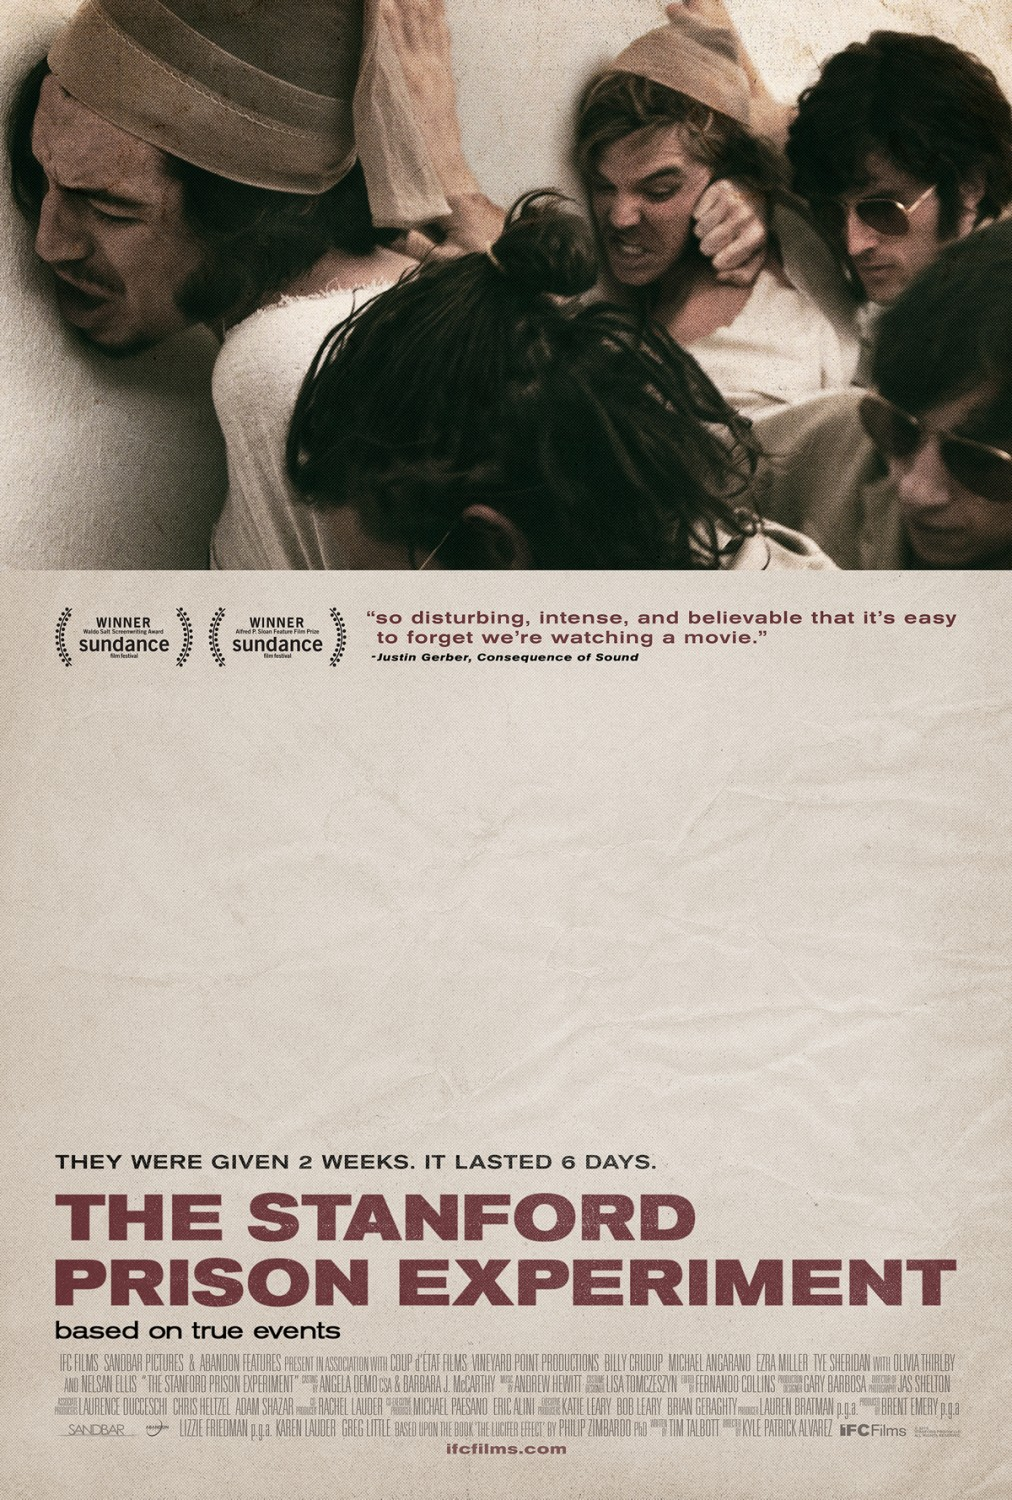 8 - The Stanford Prison Experiment